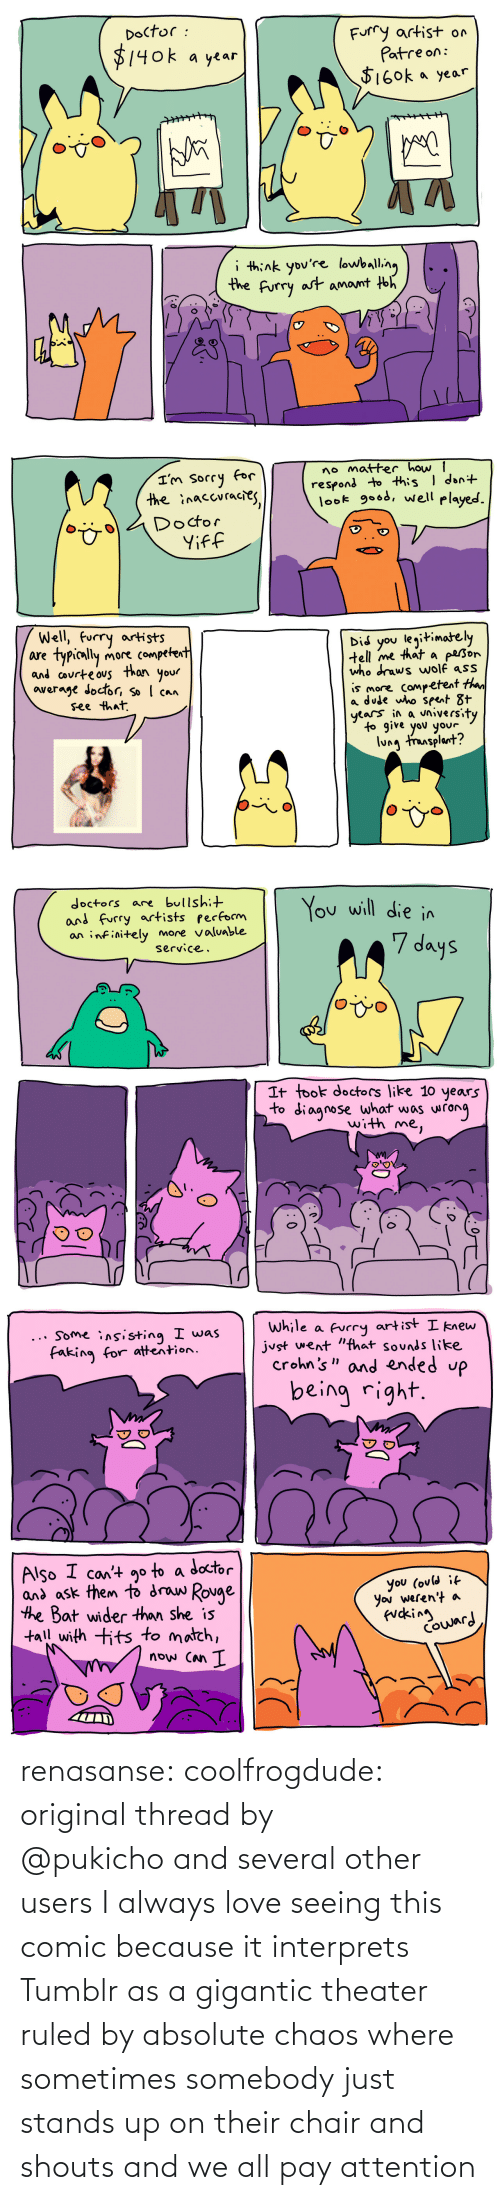 year: renasanse: coolfrogdude: original thread by @pukicho and several other users I always love seeing this comic because it interprets Tumblr as a gigantic theater ruled by absolute chaos where sometimes somebody just stands up on their chair and shouts and we all pay attention